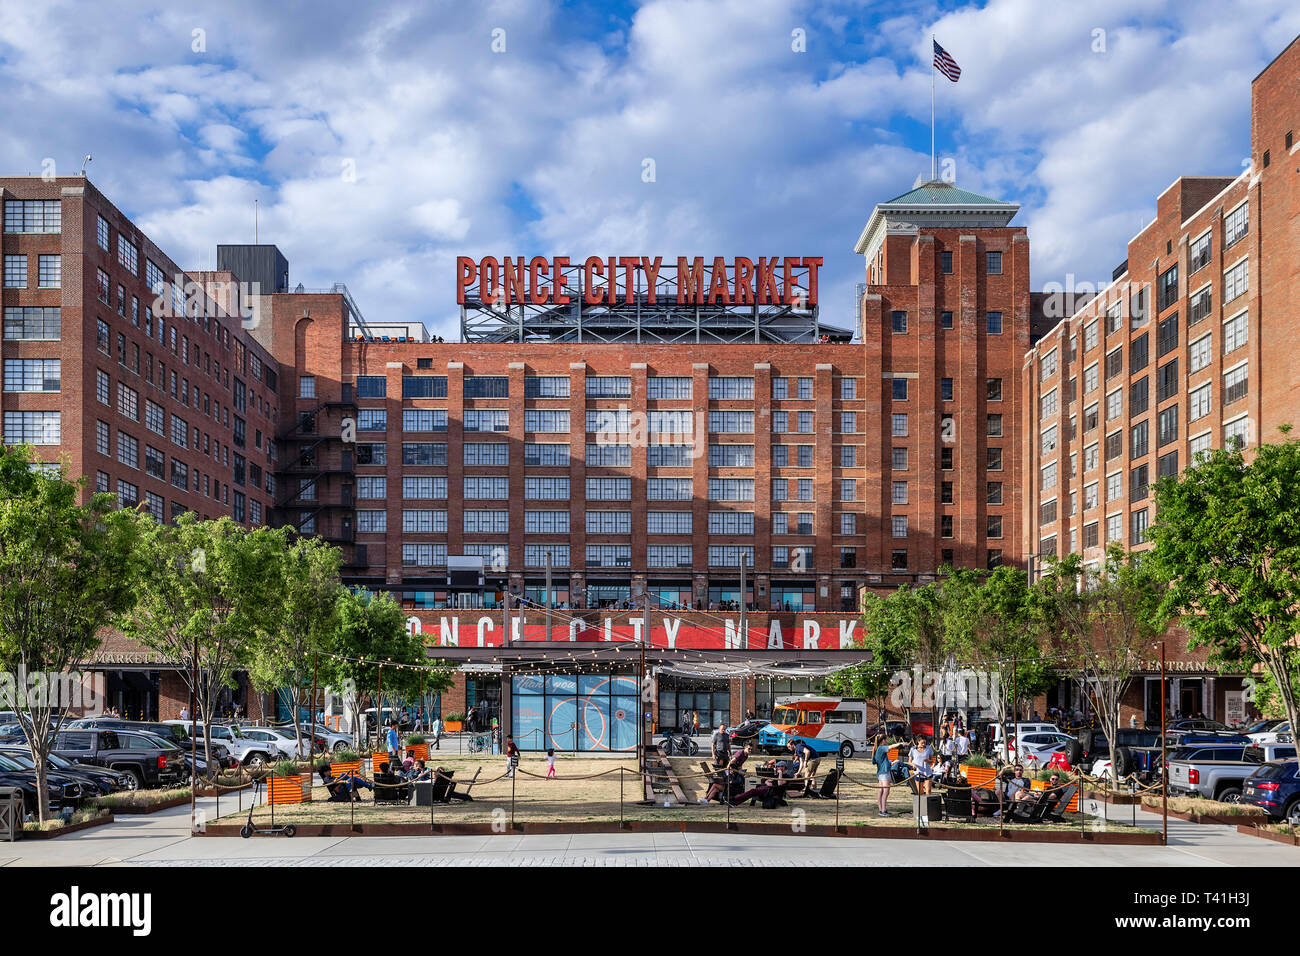 Ponce City Market, Atlanta, Georgia, USA. - Stock Image